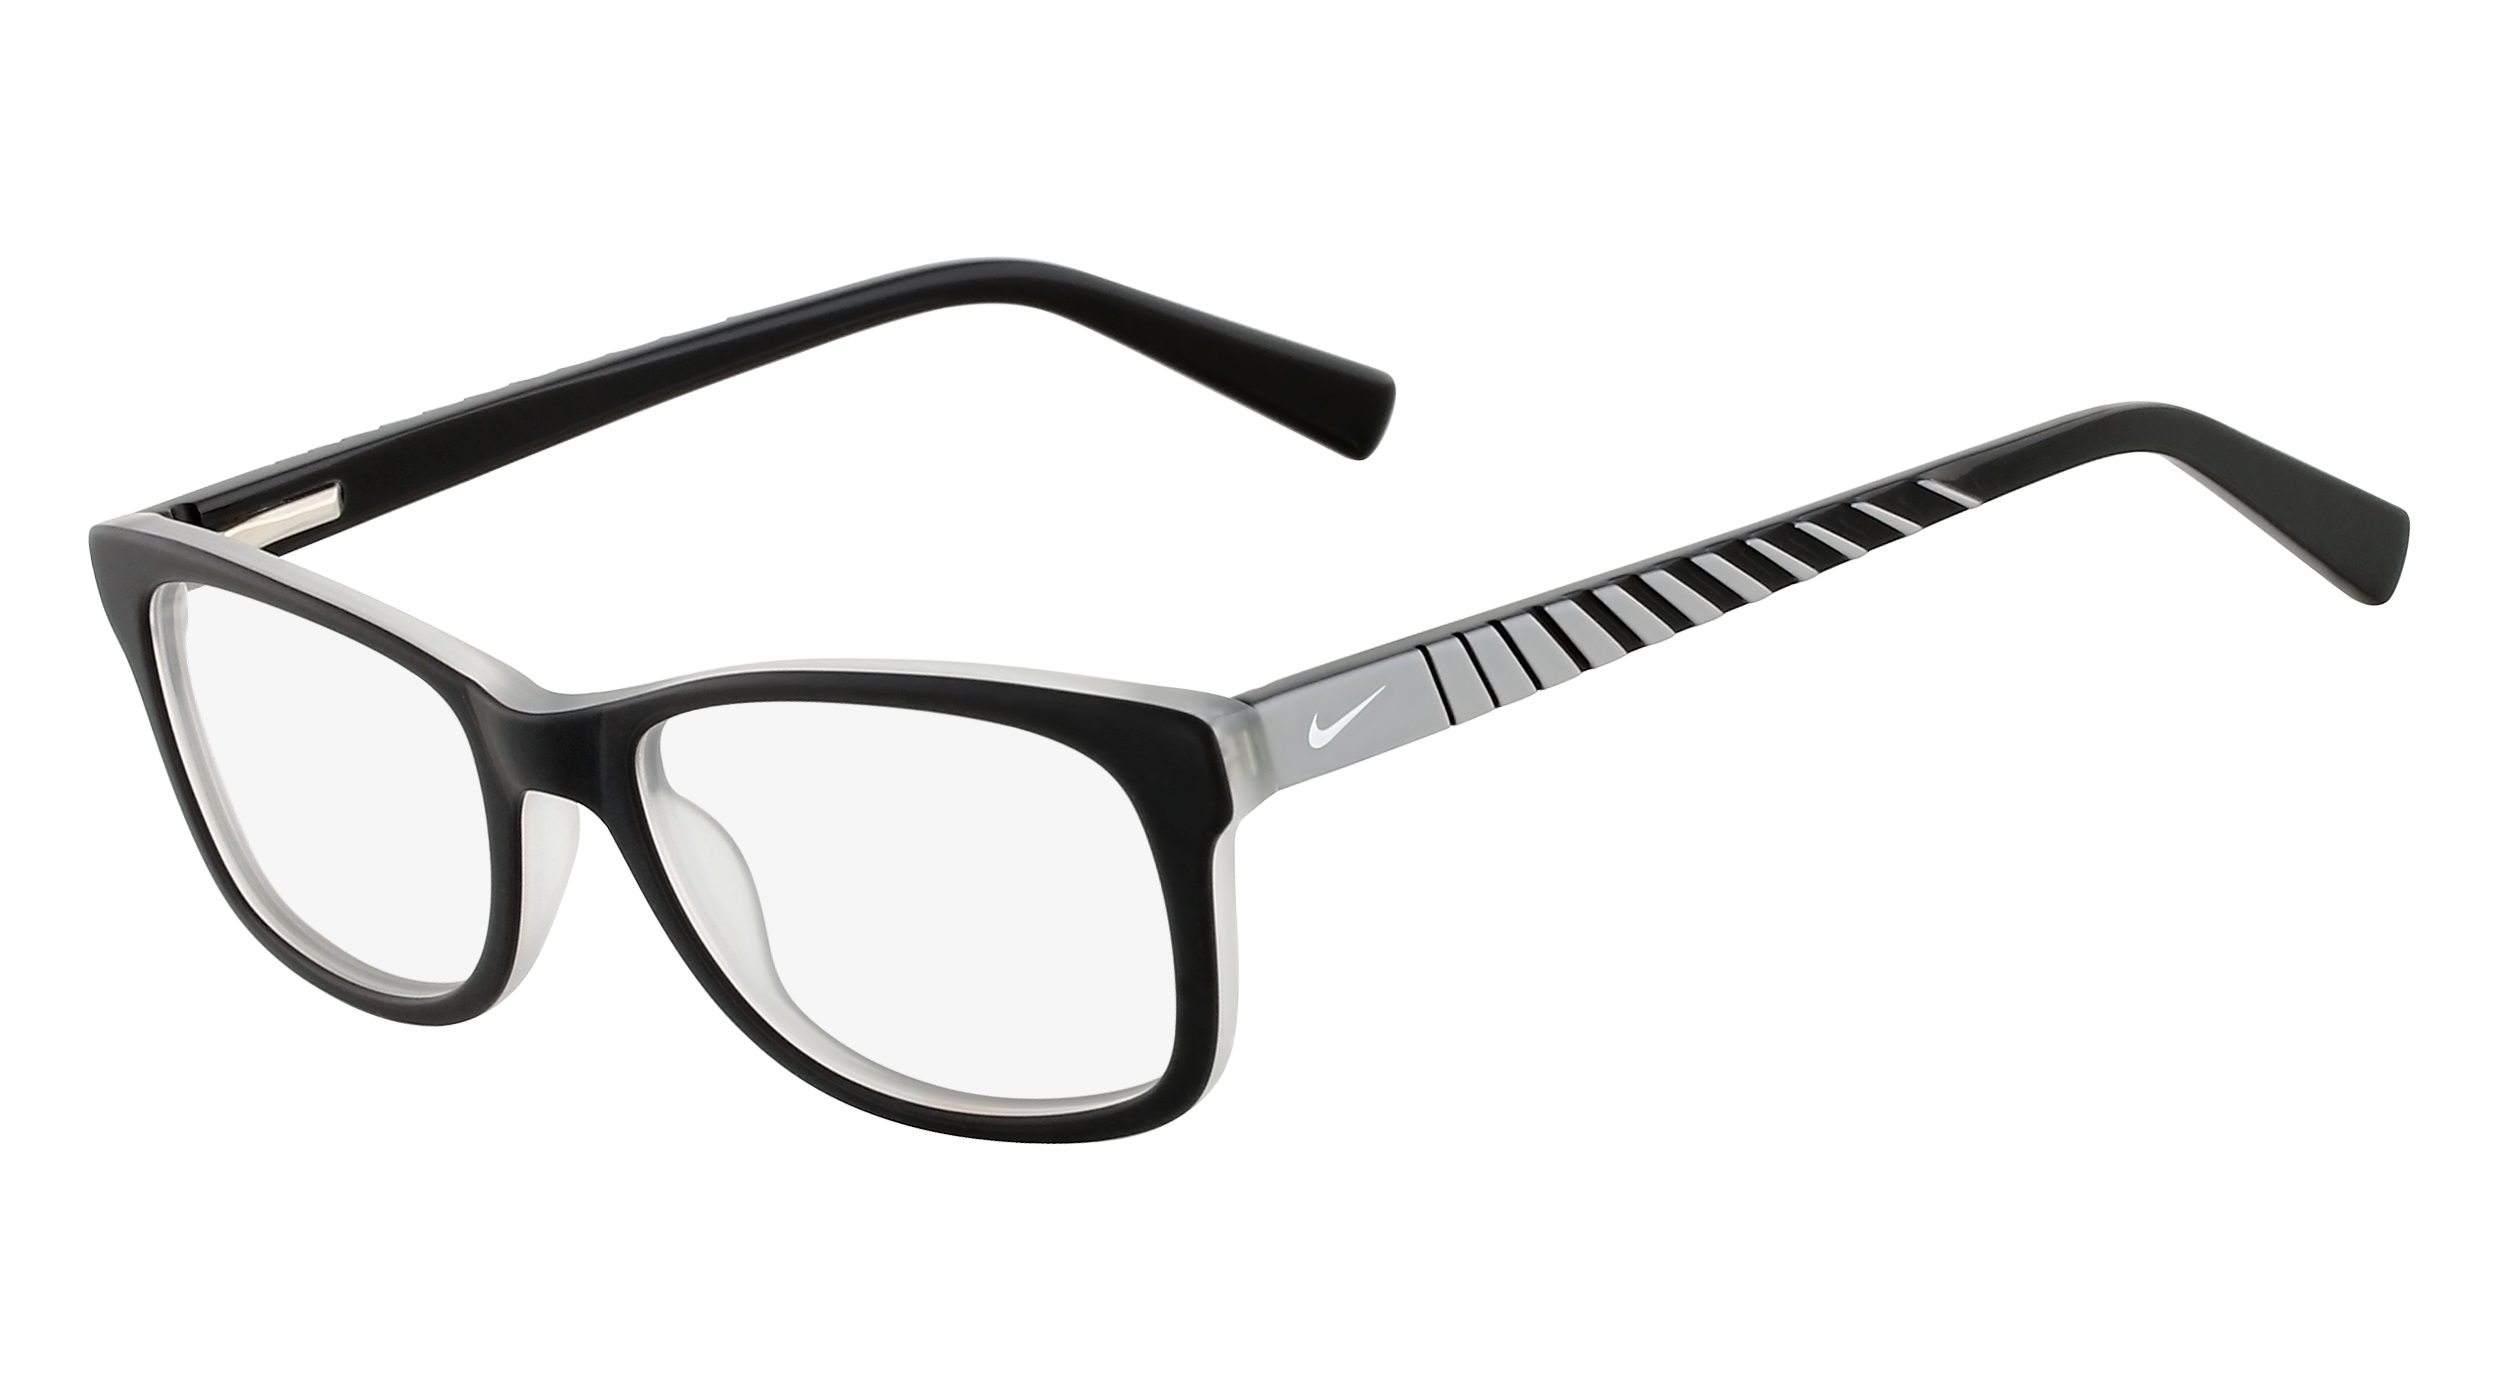 4383b75a846e Nike 5509-018 Kids Eyeglasses Satin Black Grey Nike5509-018 - Optiwow